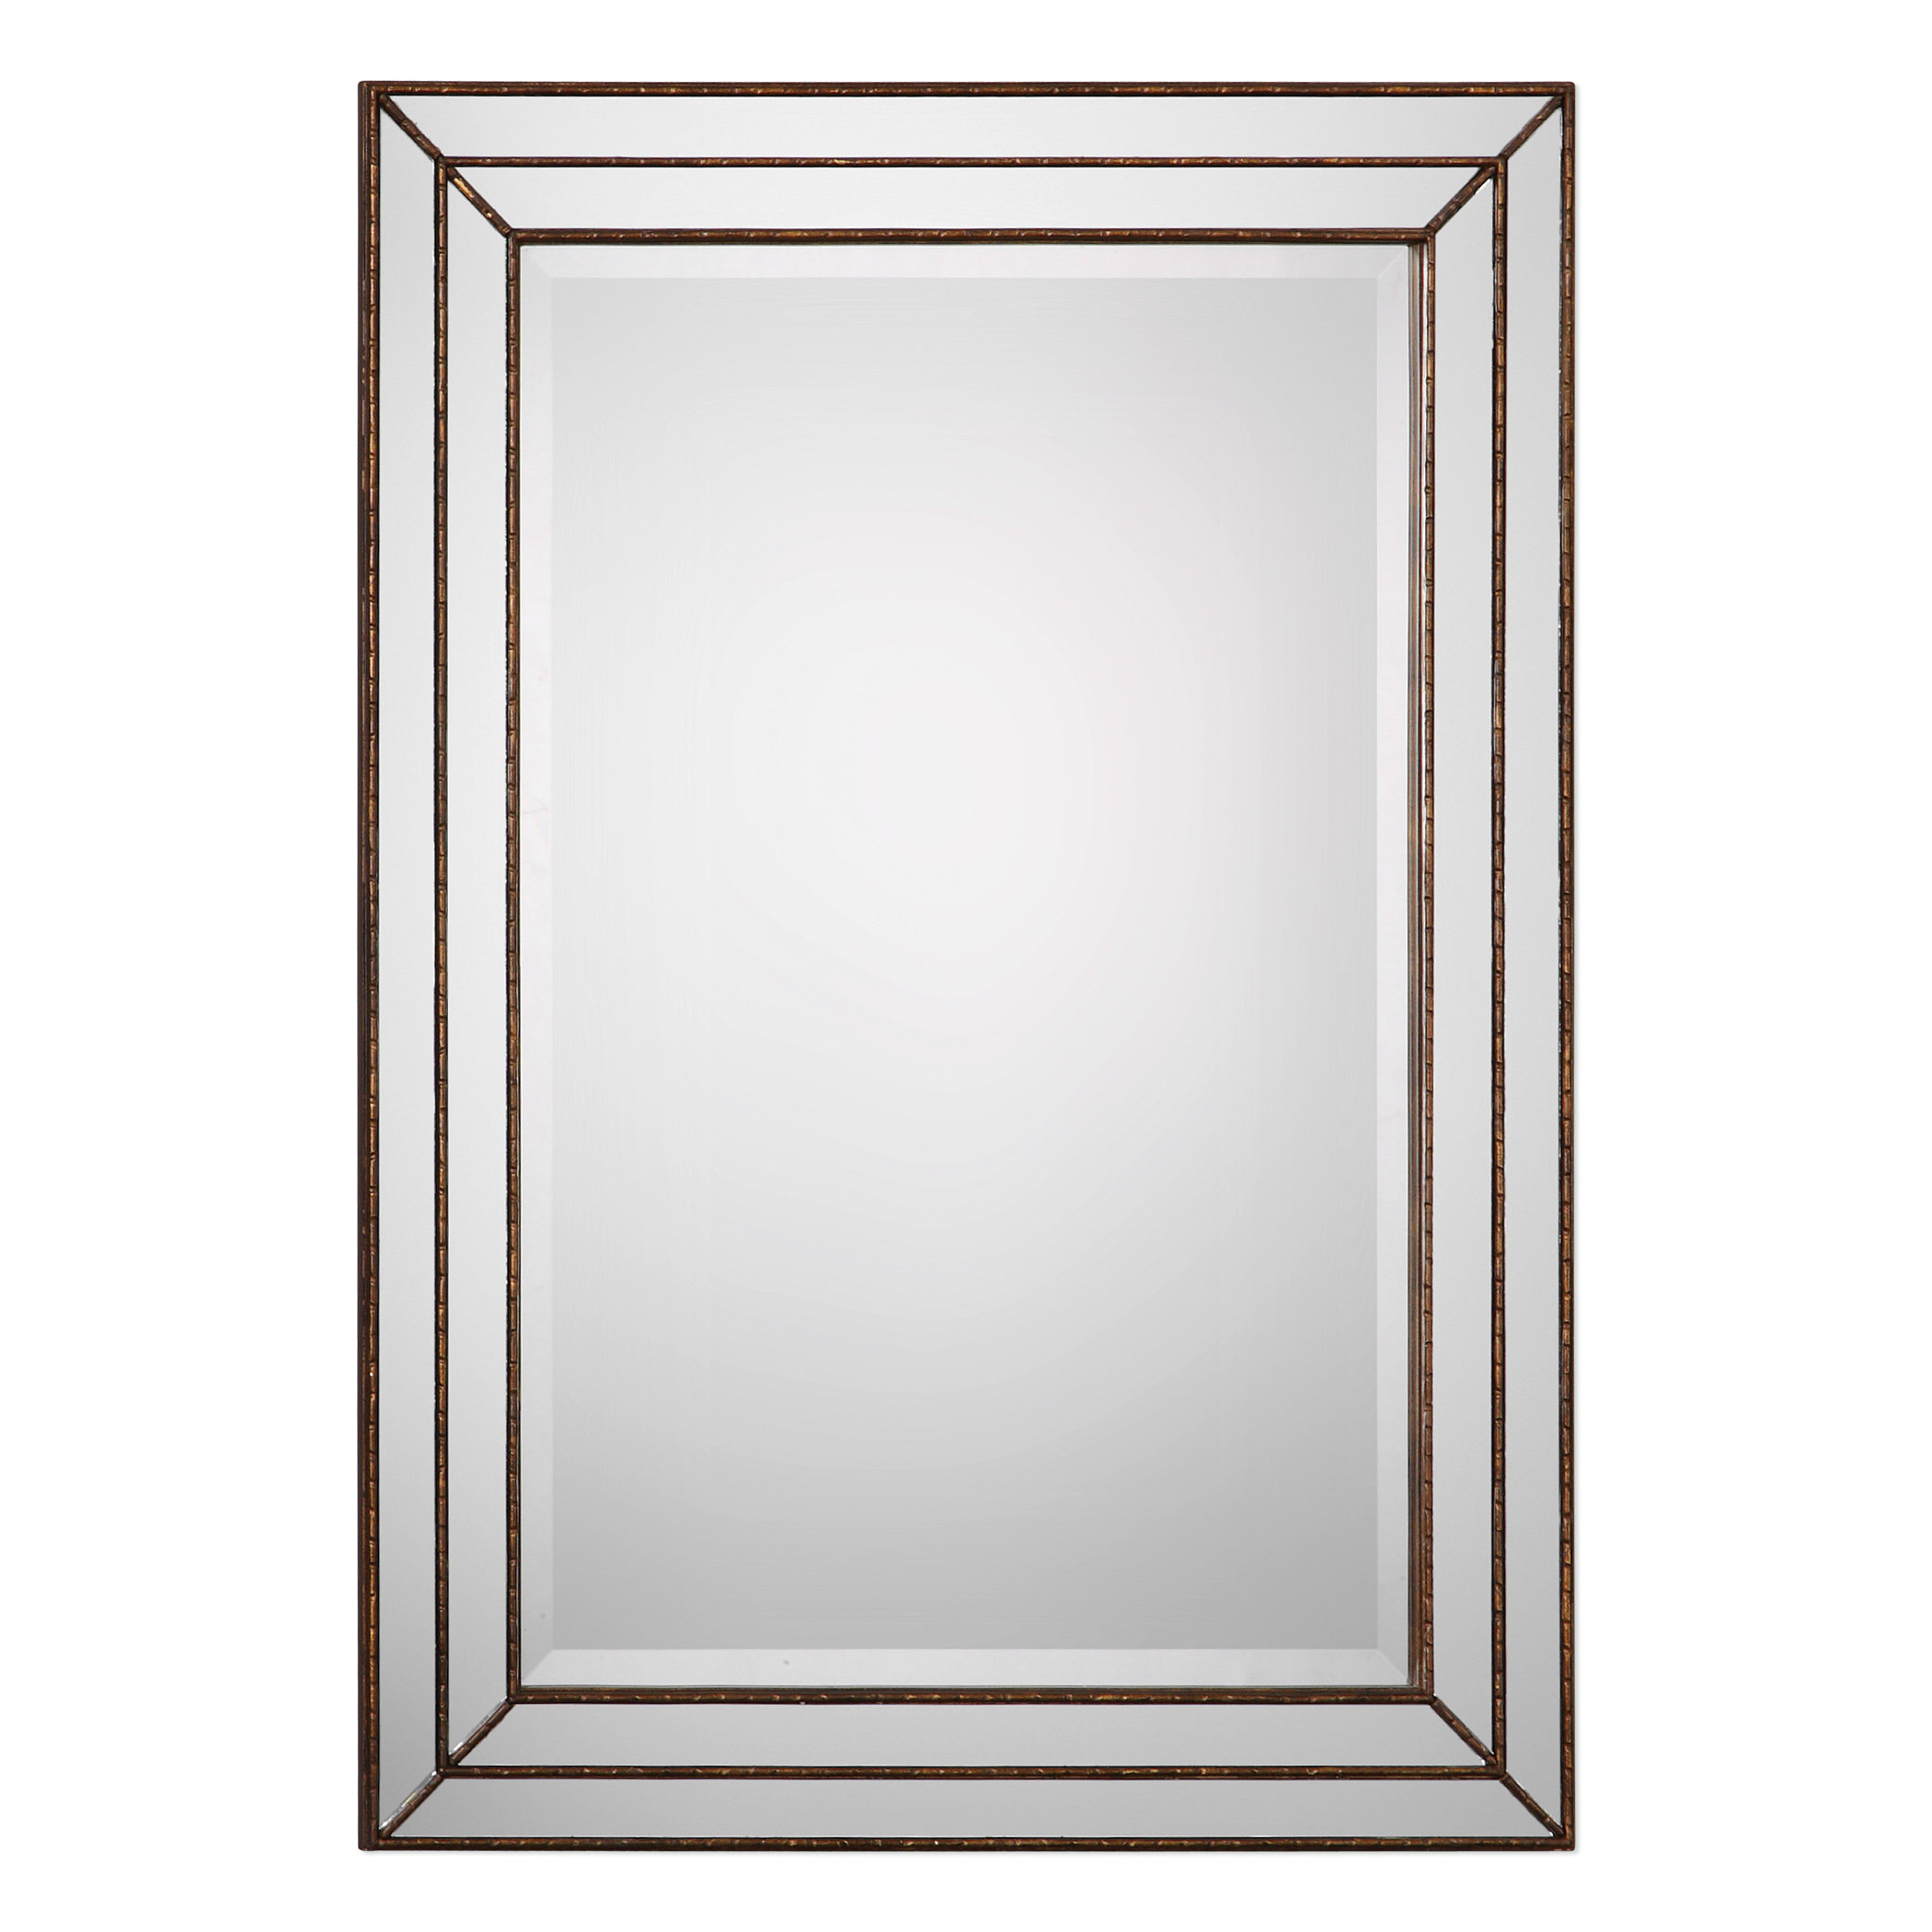 Greyleigh Willacoochee Traditional Beveled Accent Mirror Intended For Most Up To Date Vassallo Beaded Bronze Beveled Wall Mirrors (View 8 of 20)